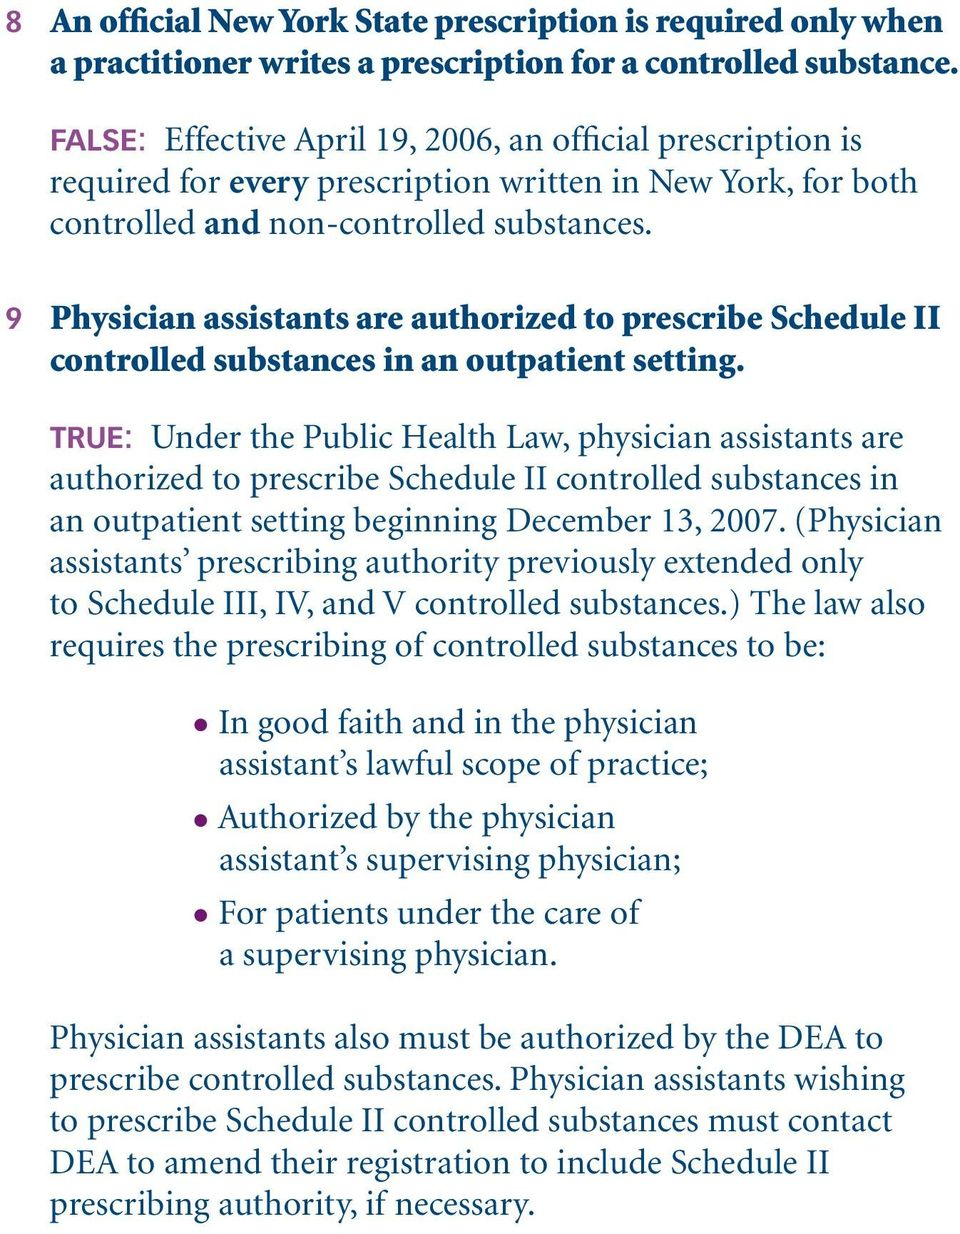 9 Physician assistants are authorized to prescribe Schedule II controlled substances in an outpatient setting.